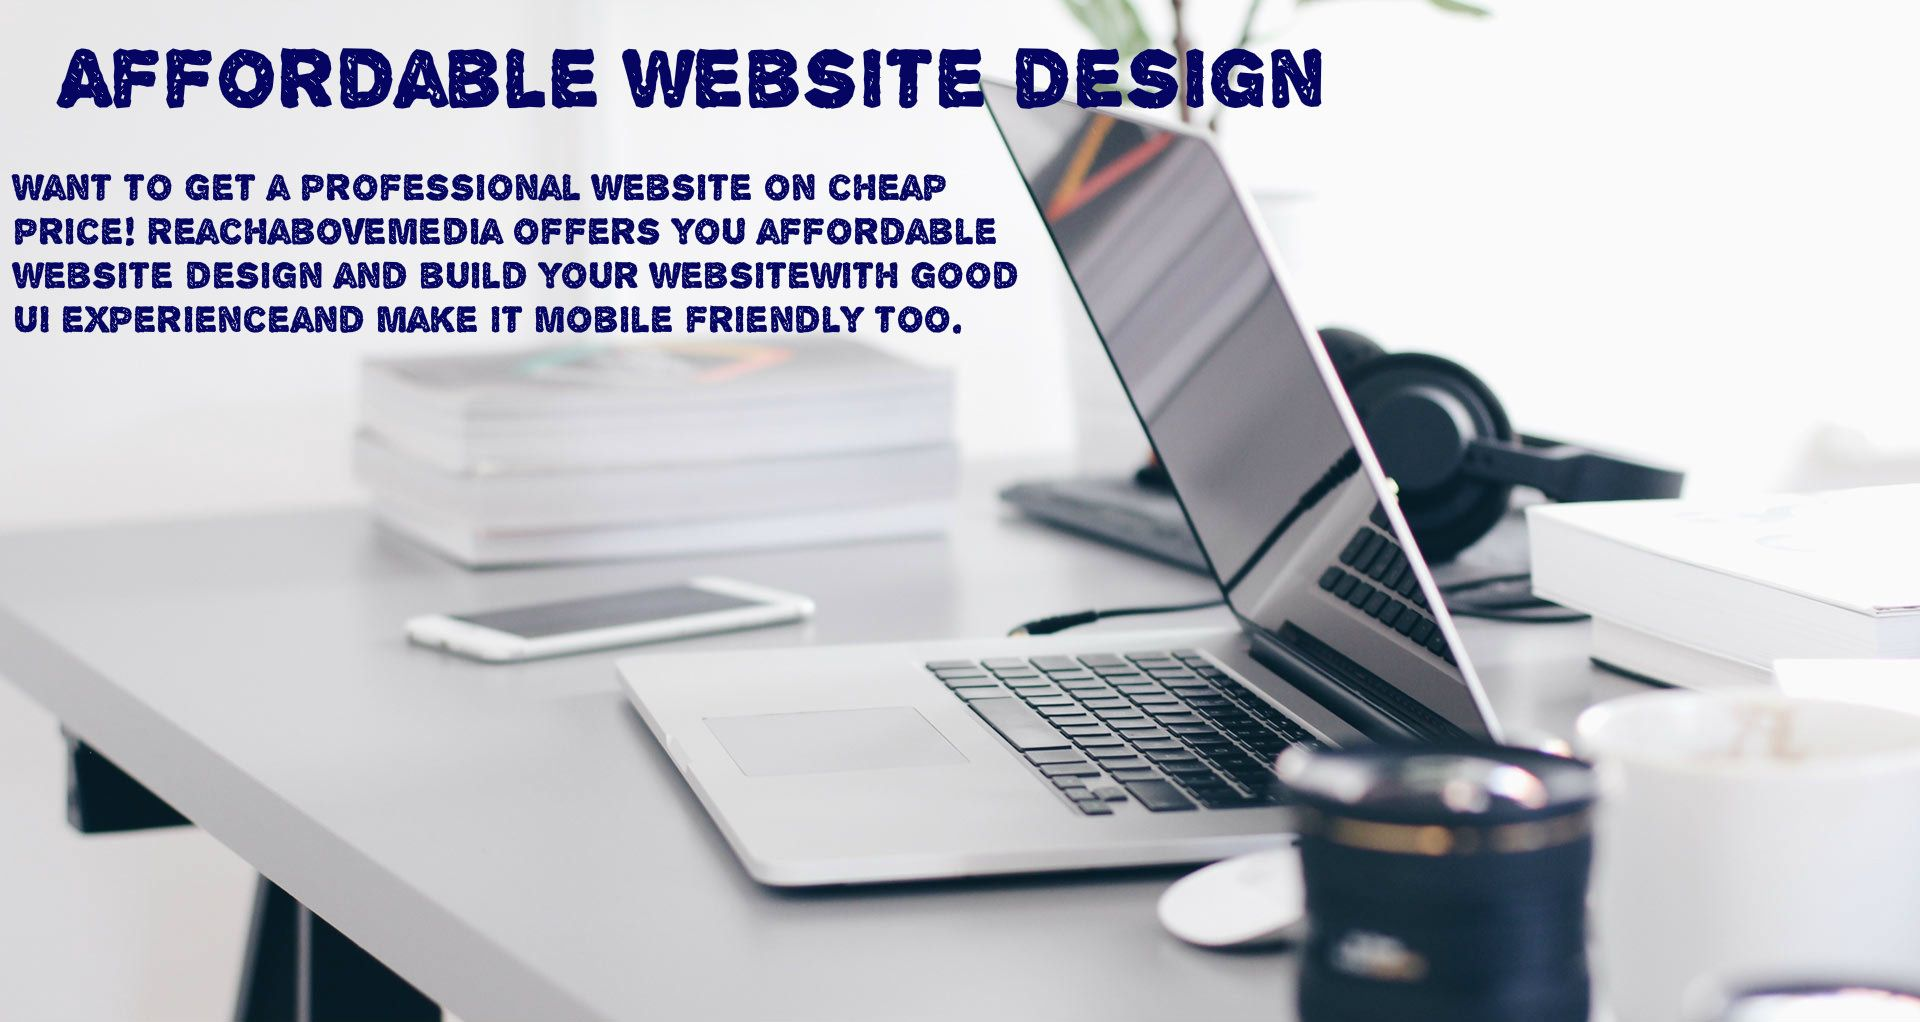 Want To Get A Professional Website On Cheap Price Reachabovemedia Offers You Affordable Website Website Design Affordable Web Design Affordable Website Design